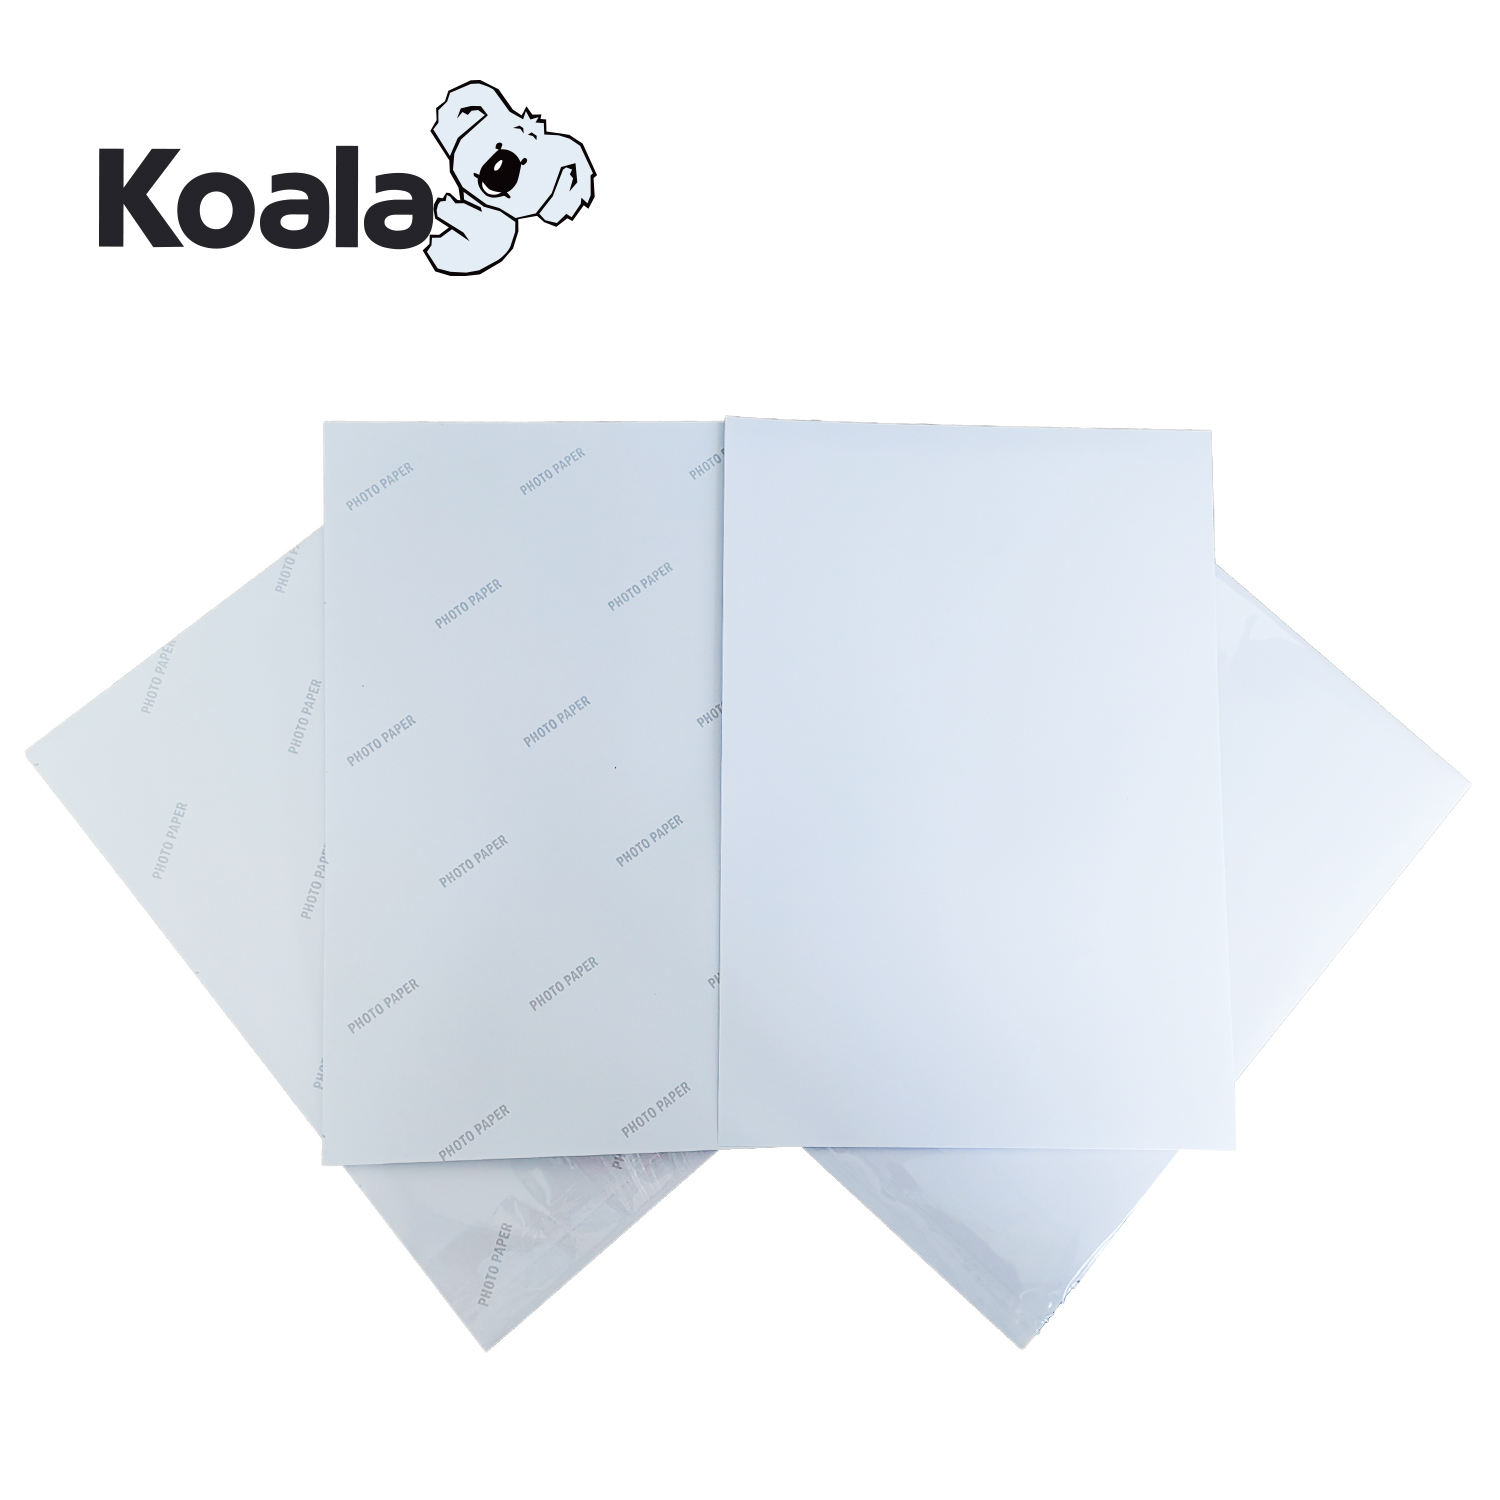 Photo Paper A4 Koala 135g Waterproof Inkjet Printable Glossy Sticker Photo Paper A4*50 Sheets